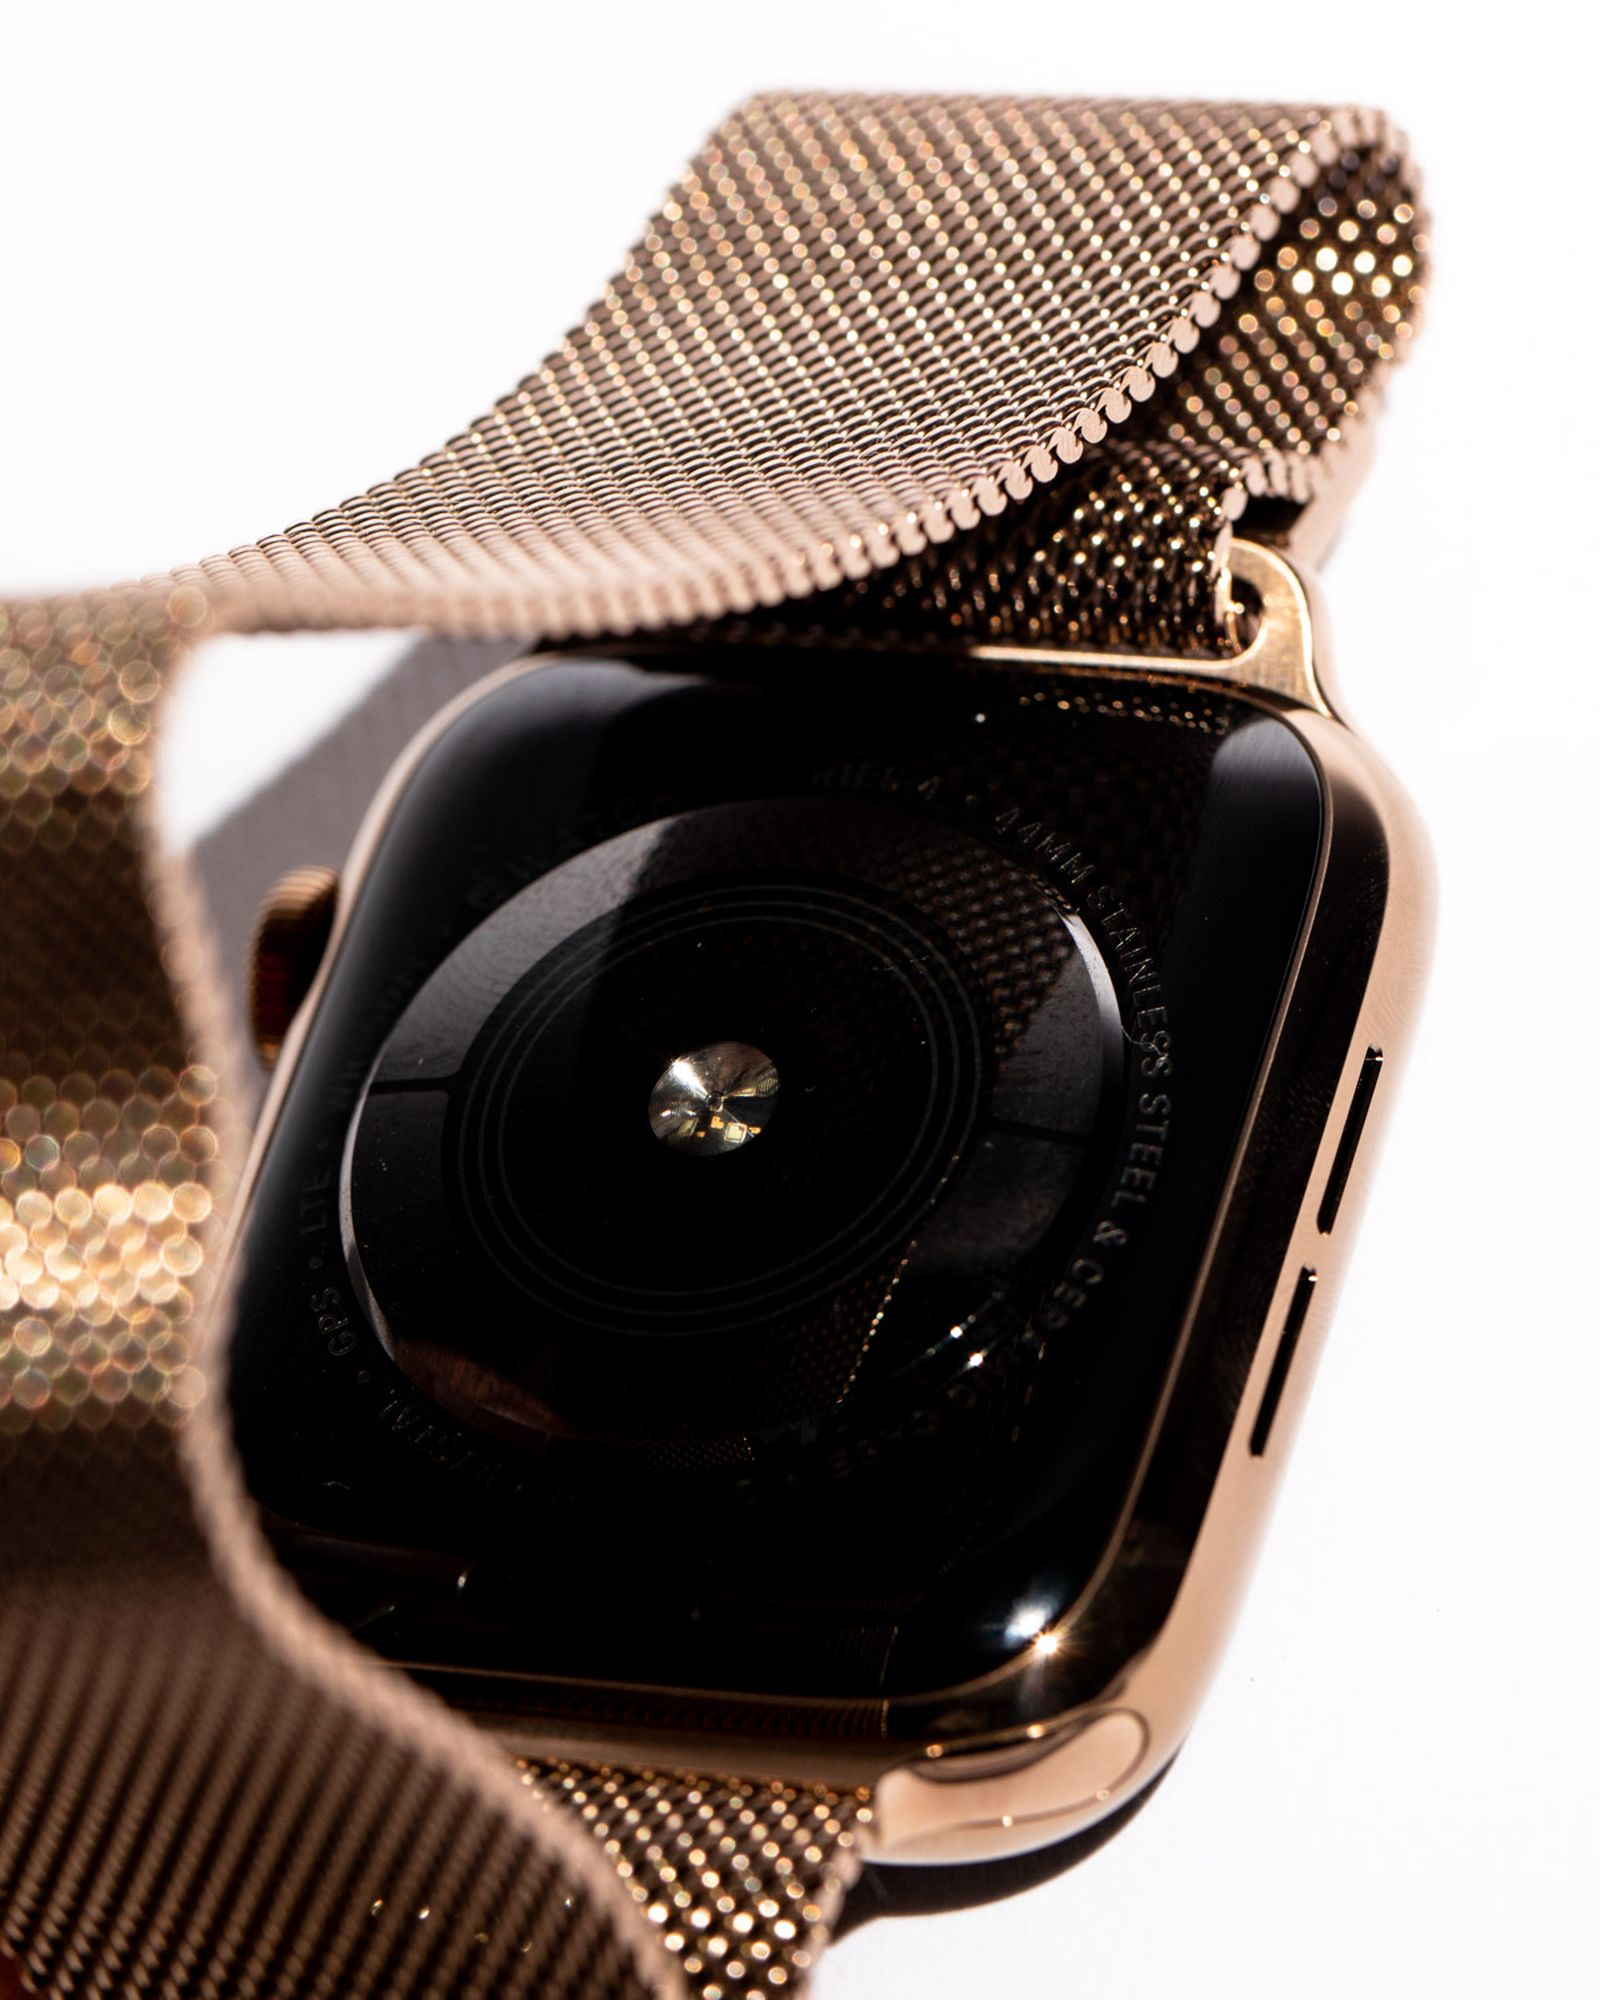 apple watch series 4 closer look